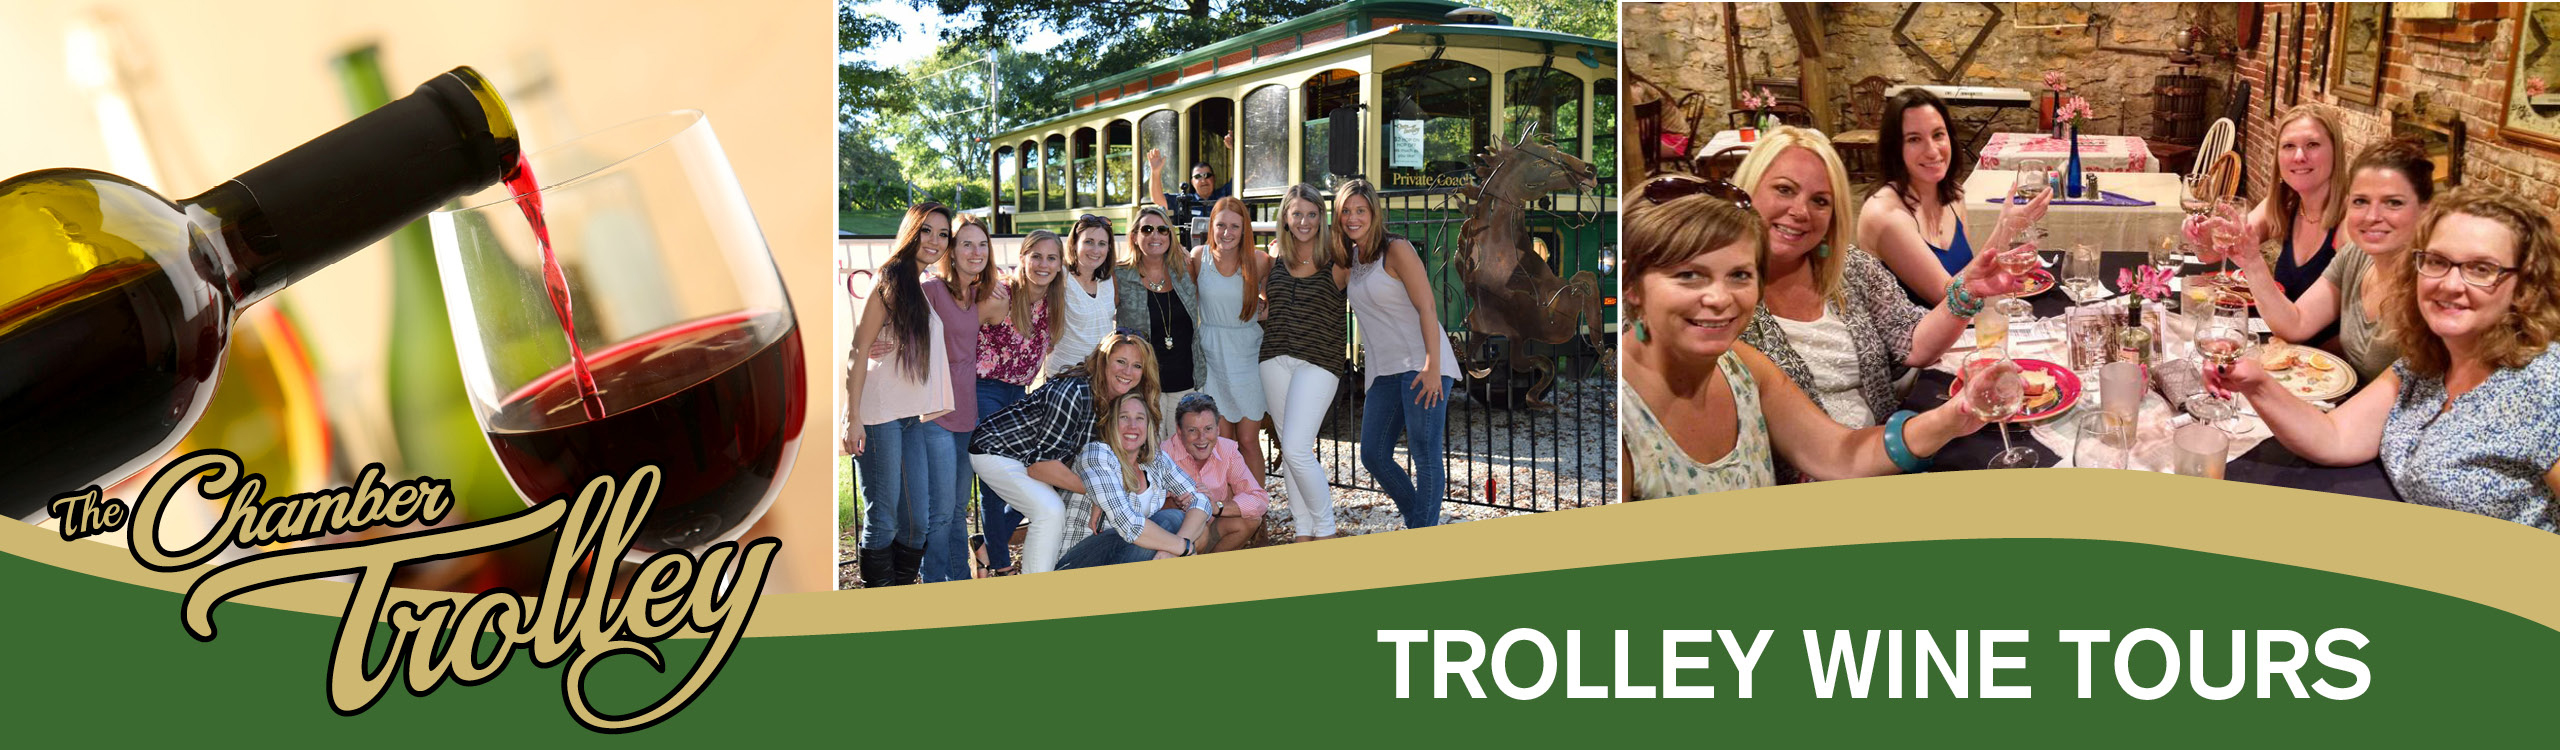 Excelsior Springs Trolley Tour